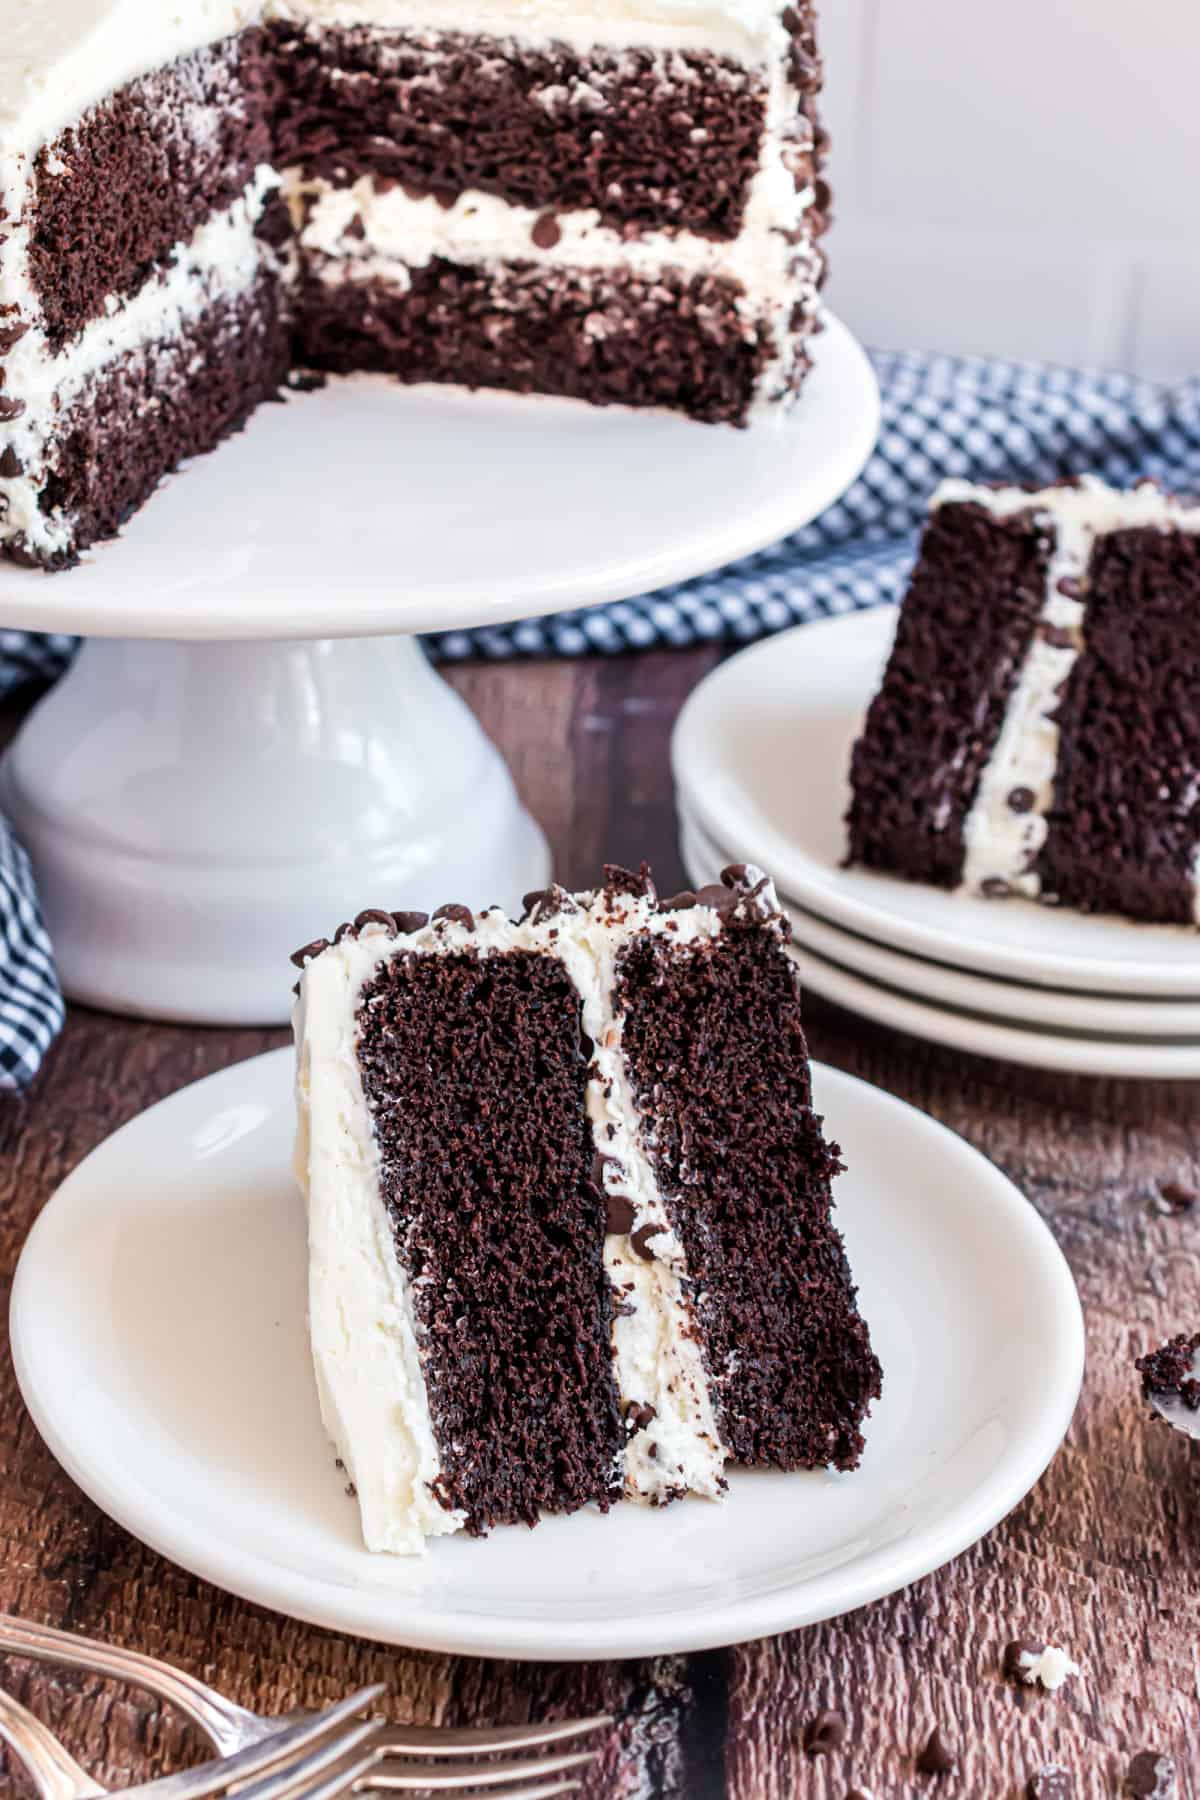 Dark chocolate cake slices on white plate and topped with vanilla frosting.